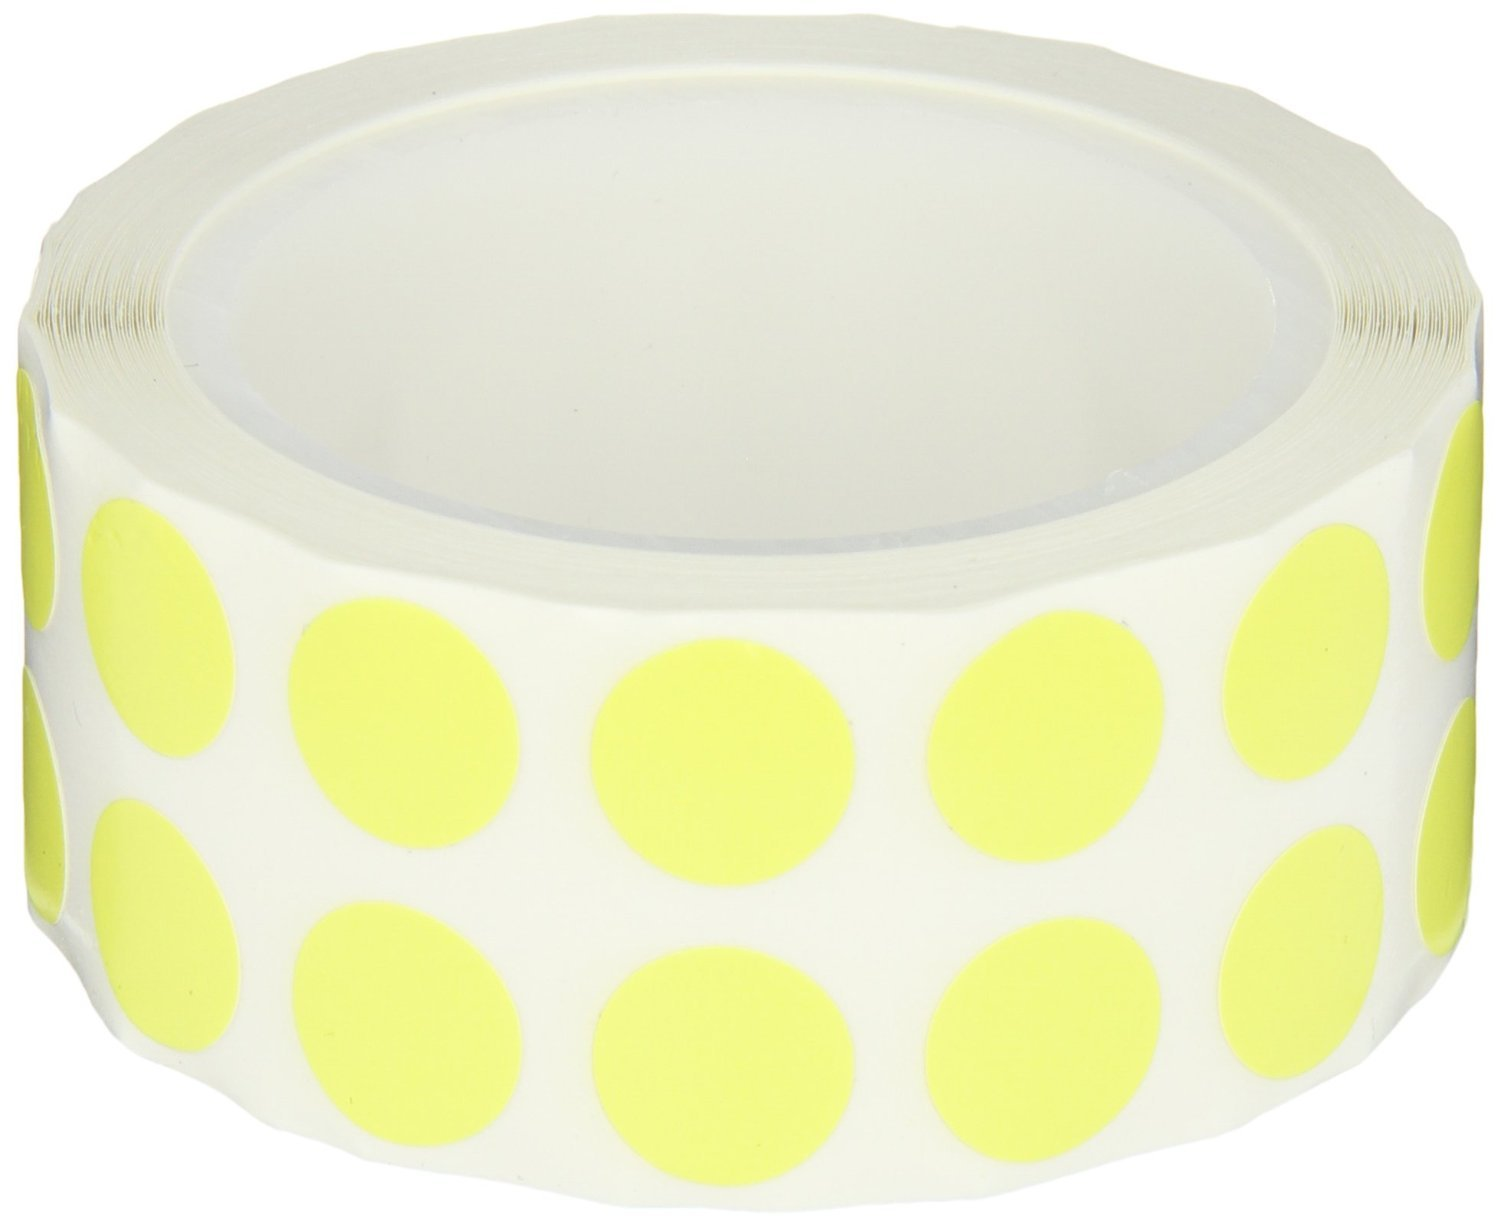 1000 per Package Yellow 1//2 Inch Diameter for 1.5-2.0ml Tubes Tough-Spots